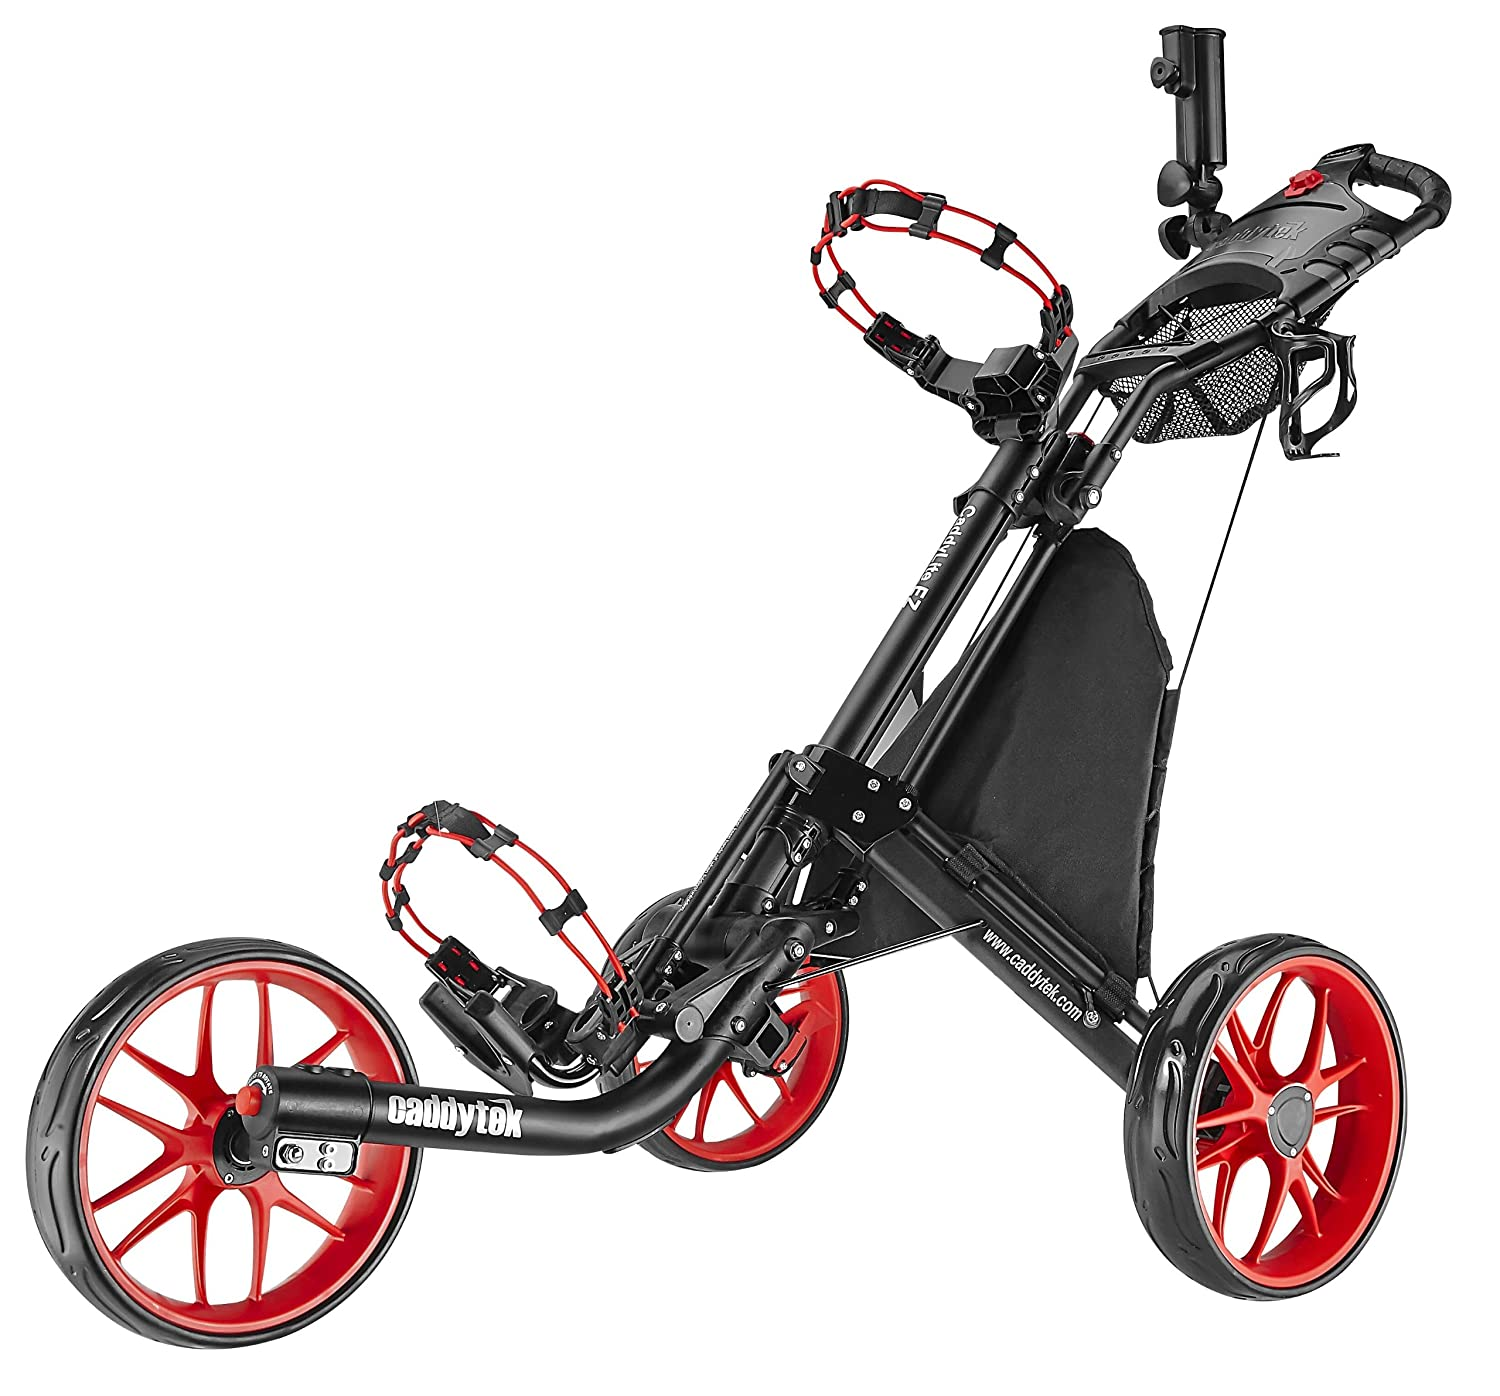 Caddytek CaddyLite EZ 3-Rad Golftrolley Rahmen Räder Rot: Amazon.de ...